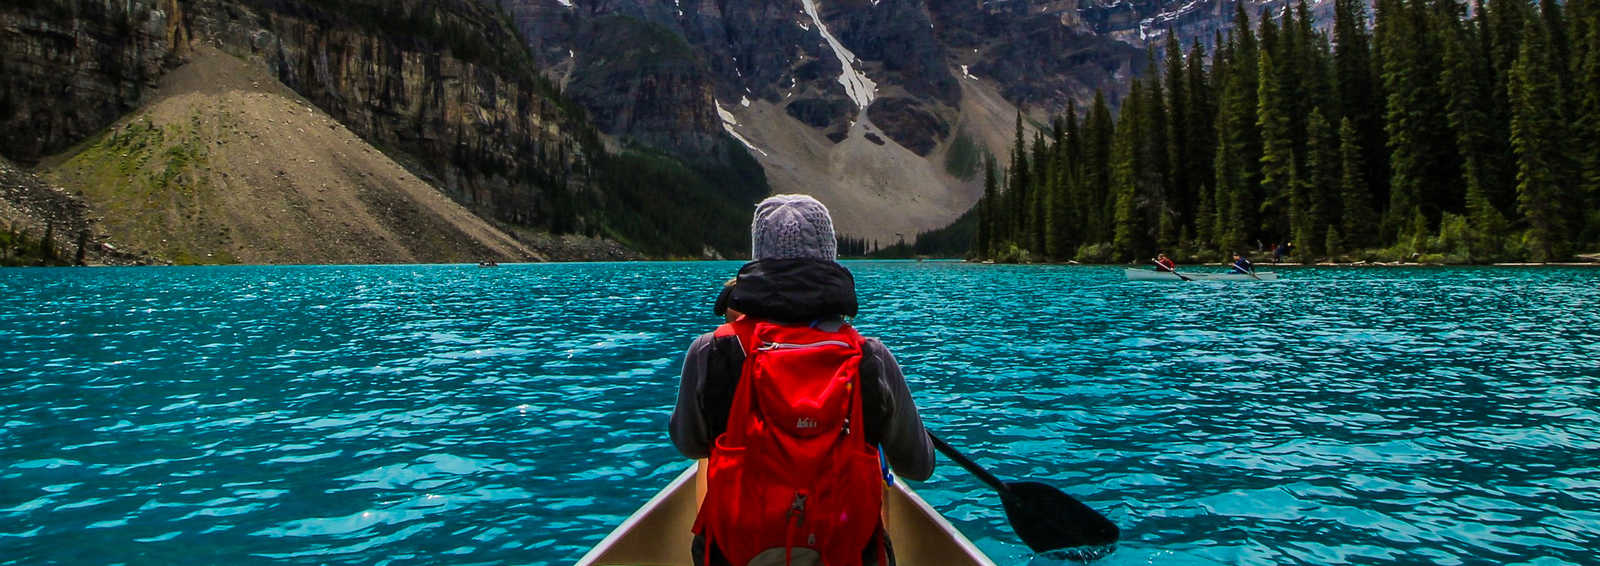 Canoeing on the incredible turquoise water of Moraine Lake, in Banff National Park.